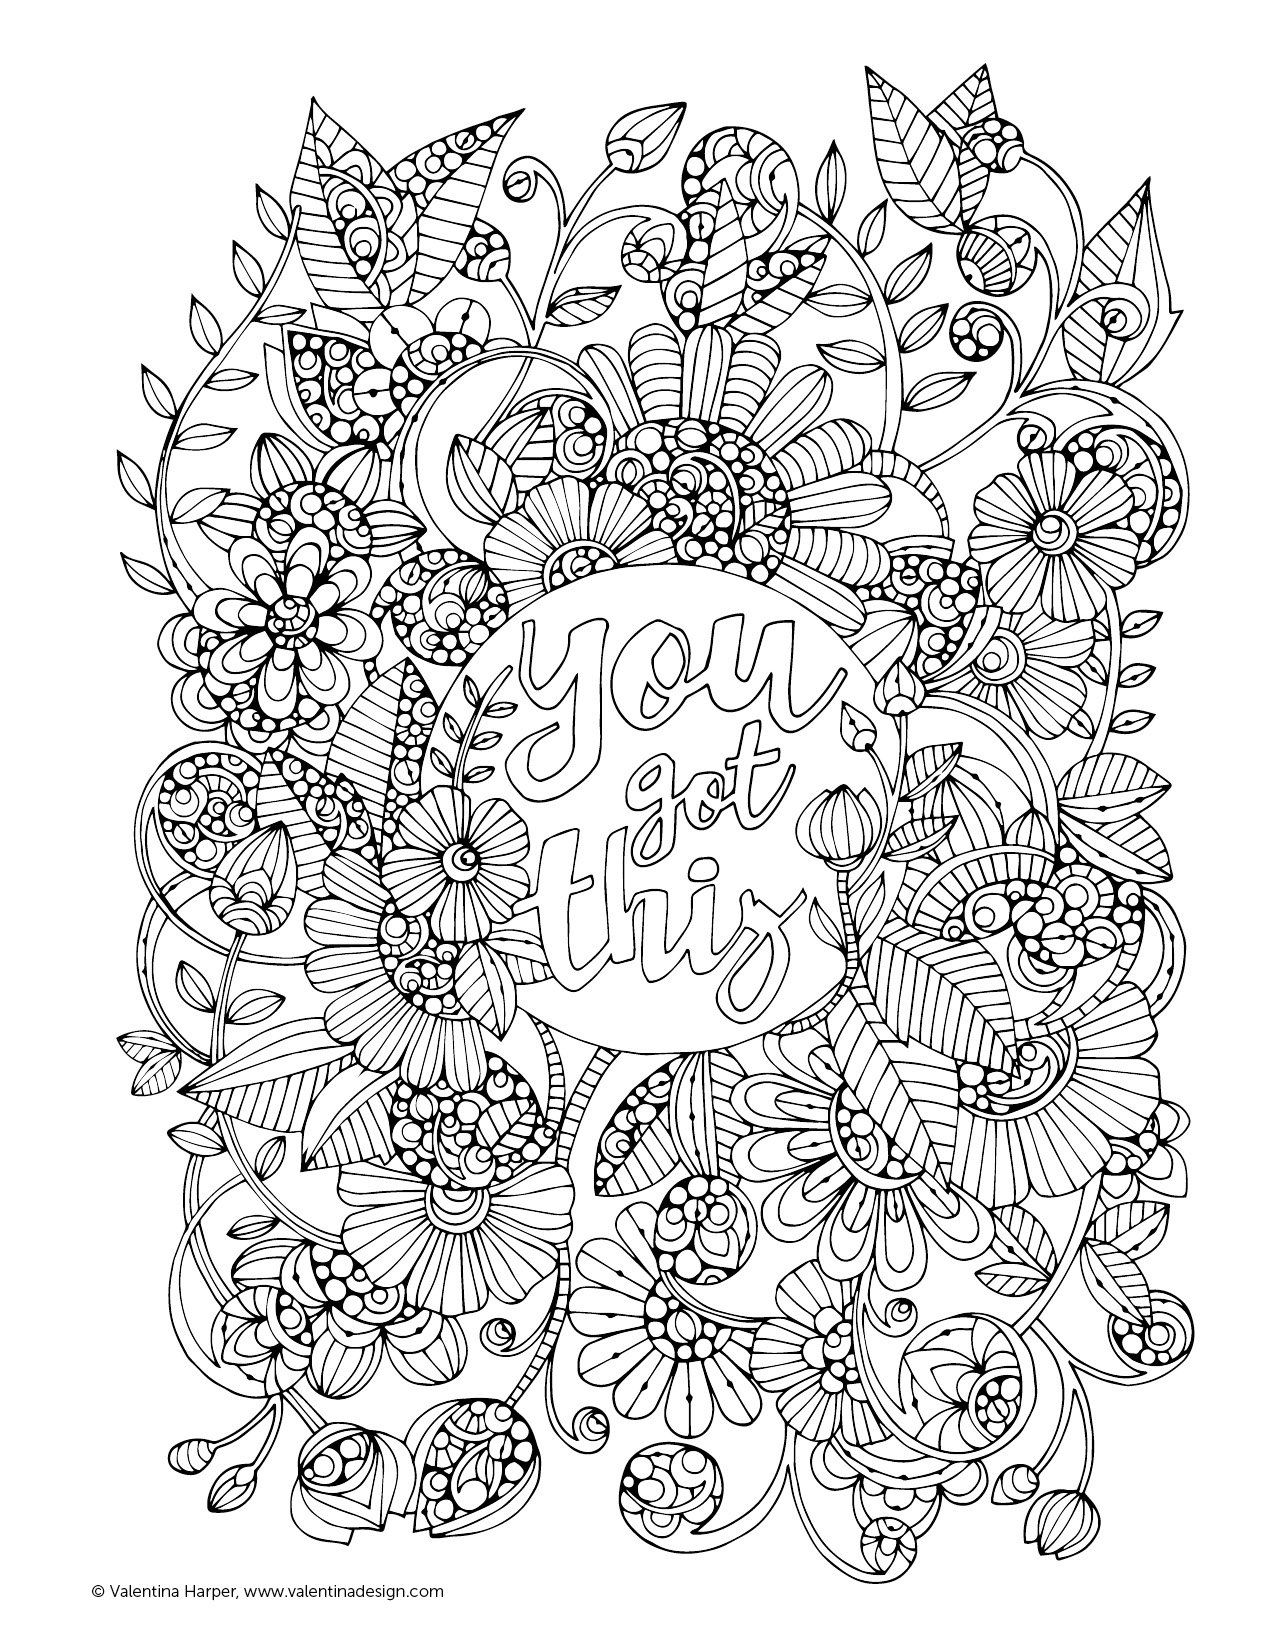 creative coloring birds art activity pages to relax and enjoy | Creative Coloring Inspirations Too: Art Activity Pages to ...